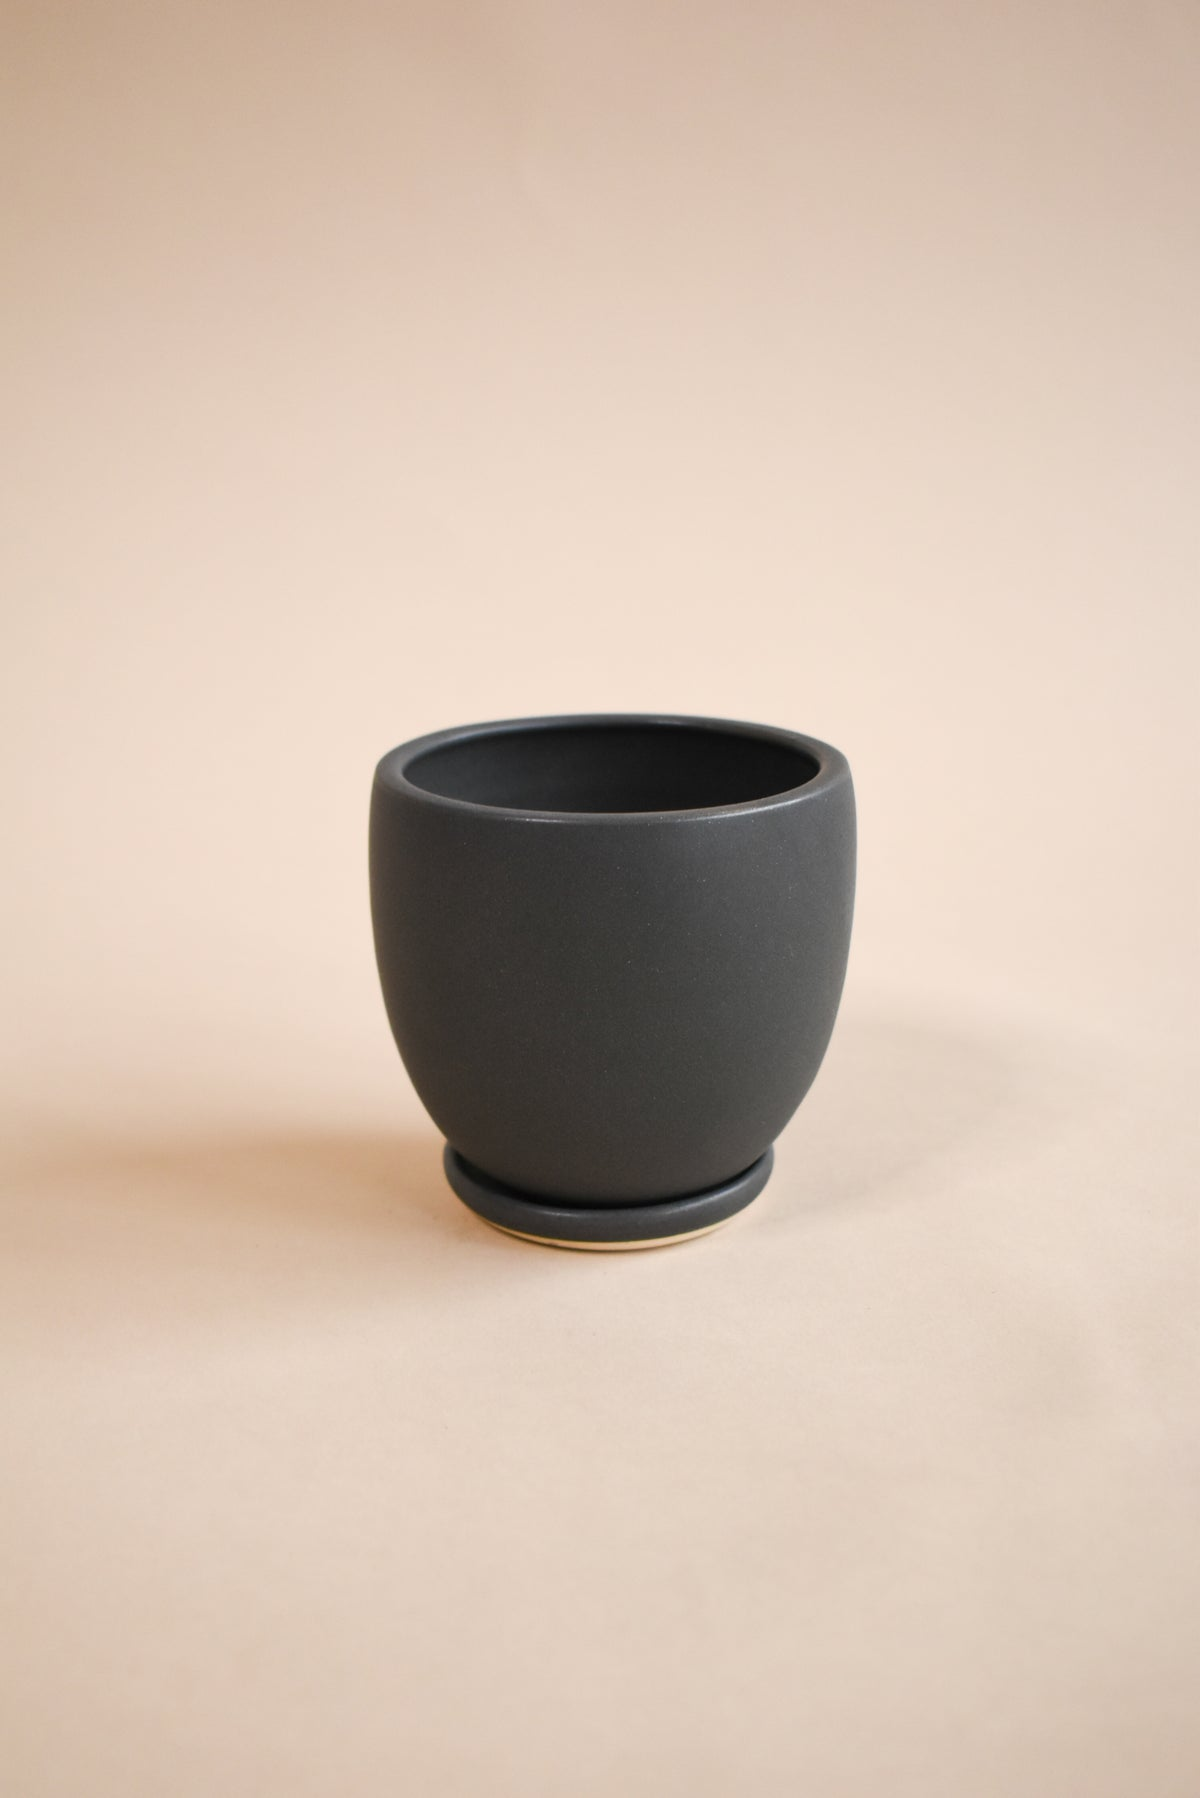 Small Tabletop Ceramic Planter with Saucer